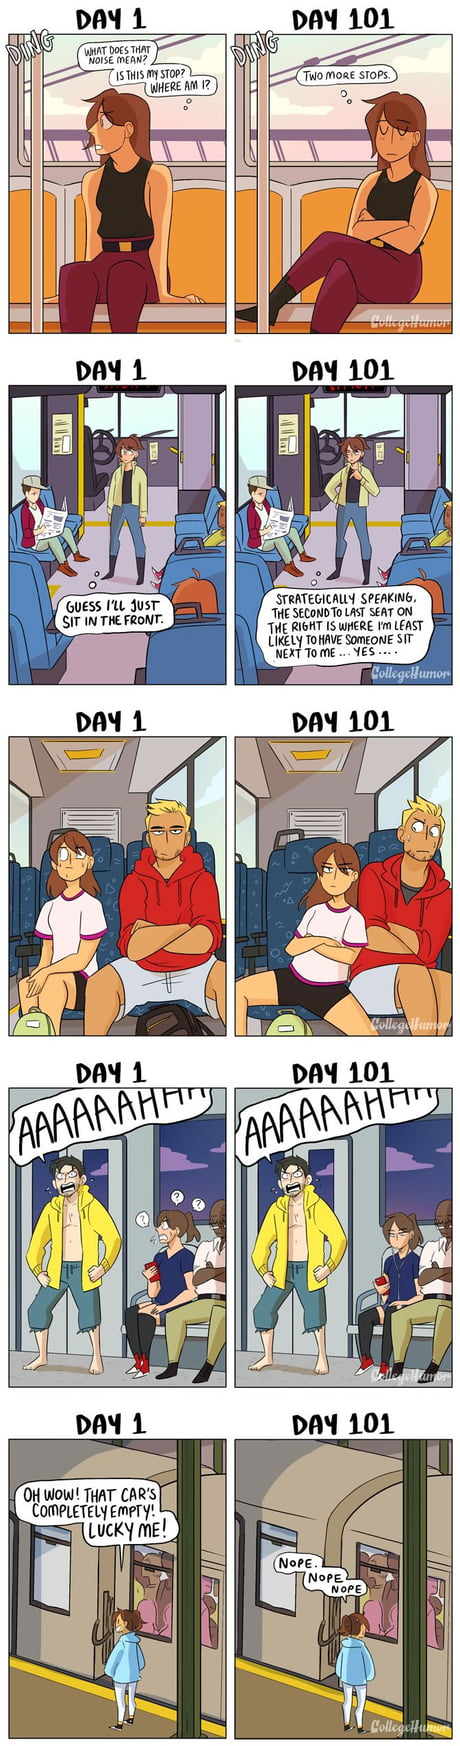 Taking Public Transit: Day 1 vs Day 101